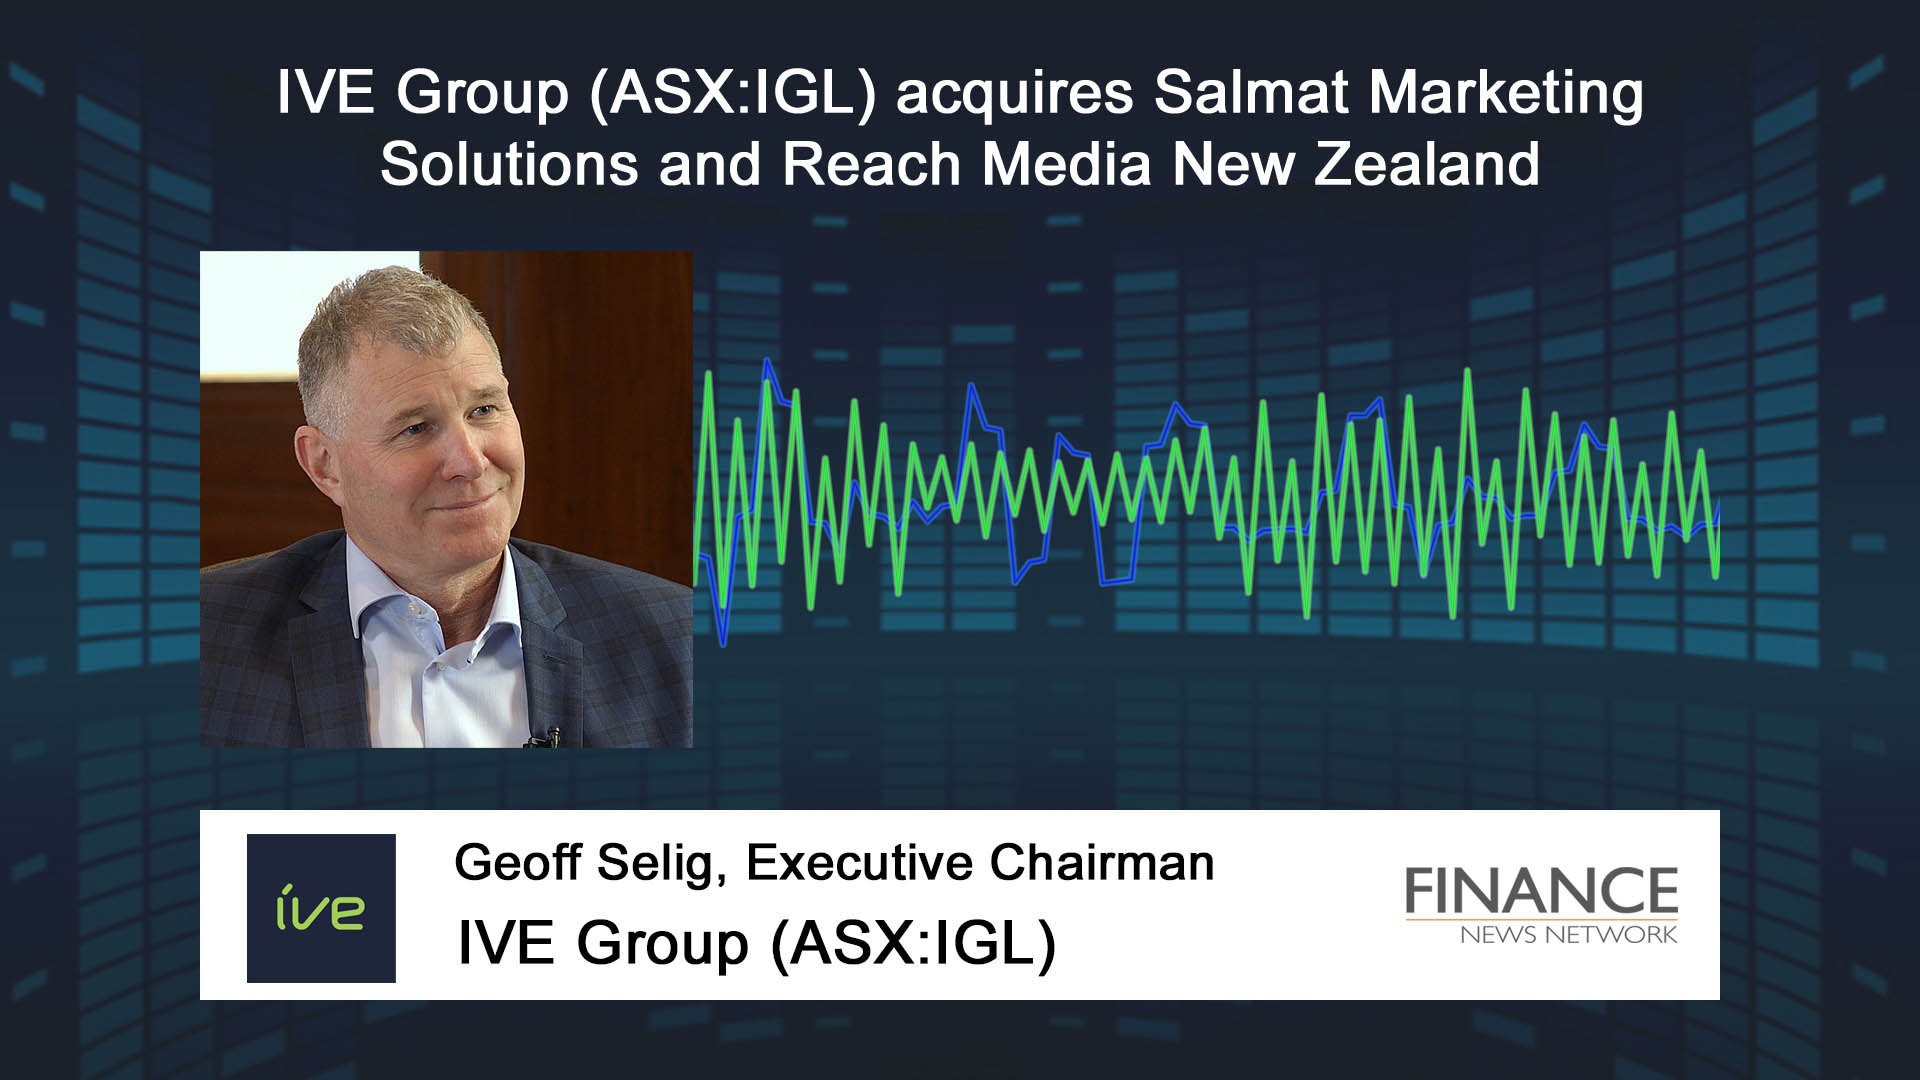 IVE Group (ASX:IGL) acquires Salmat Marketing Solutions and Reach Media New Zealand